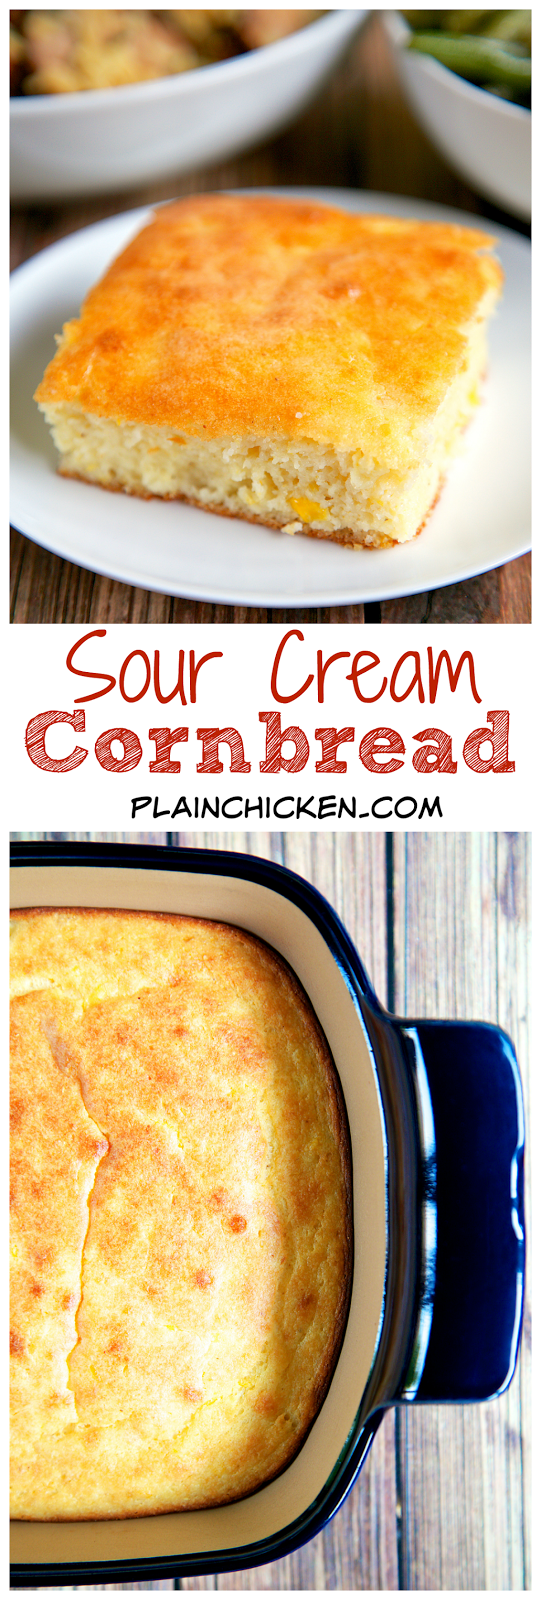 Sour Cream Cornbread Recipe - only 5 ingredients! Ready in 30 minutes! This is seriously THE BEST cornbread recipe! SO delicious and super easy!